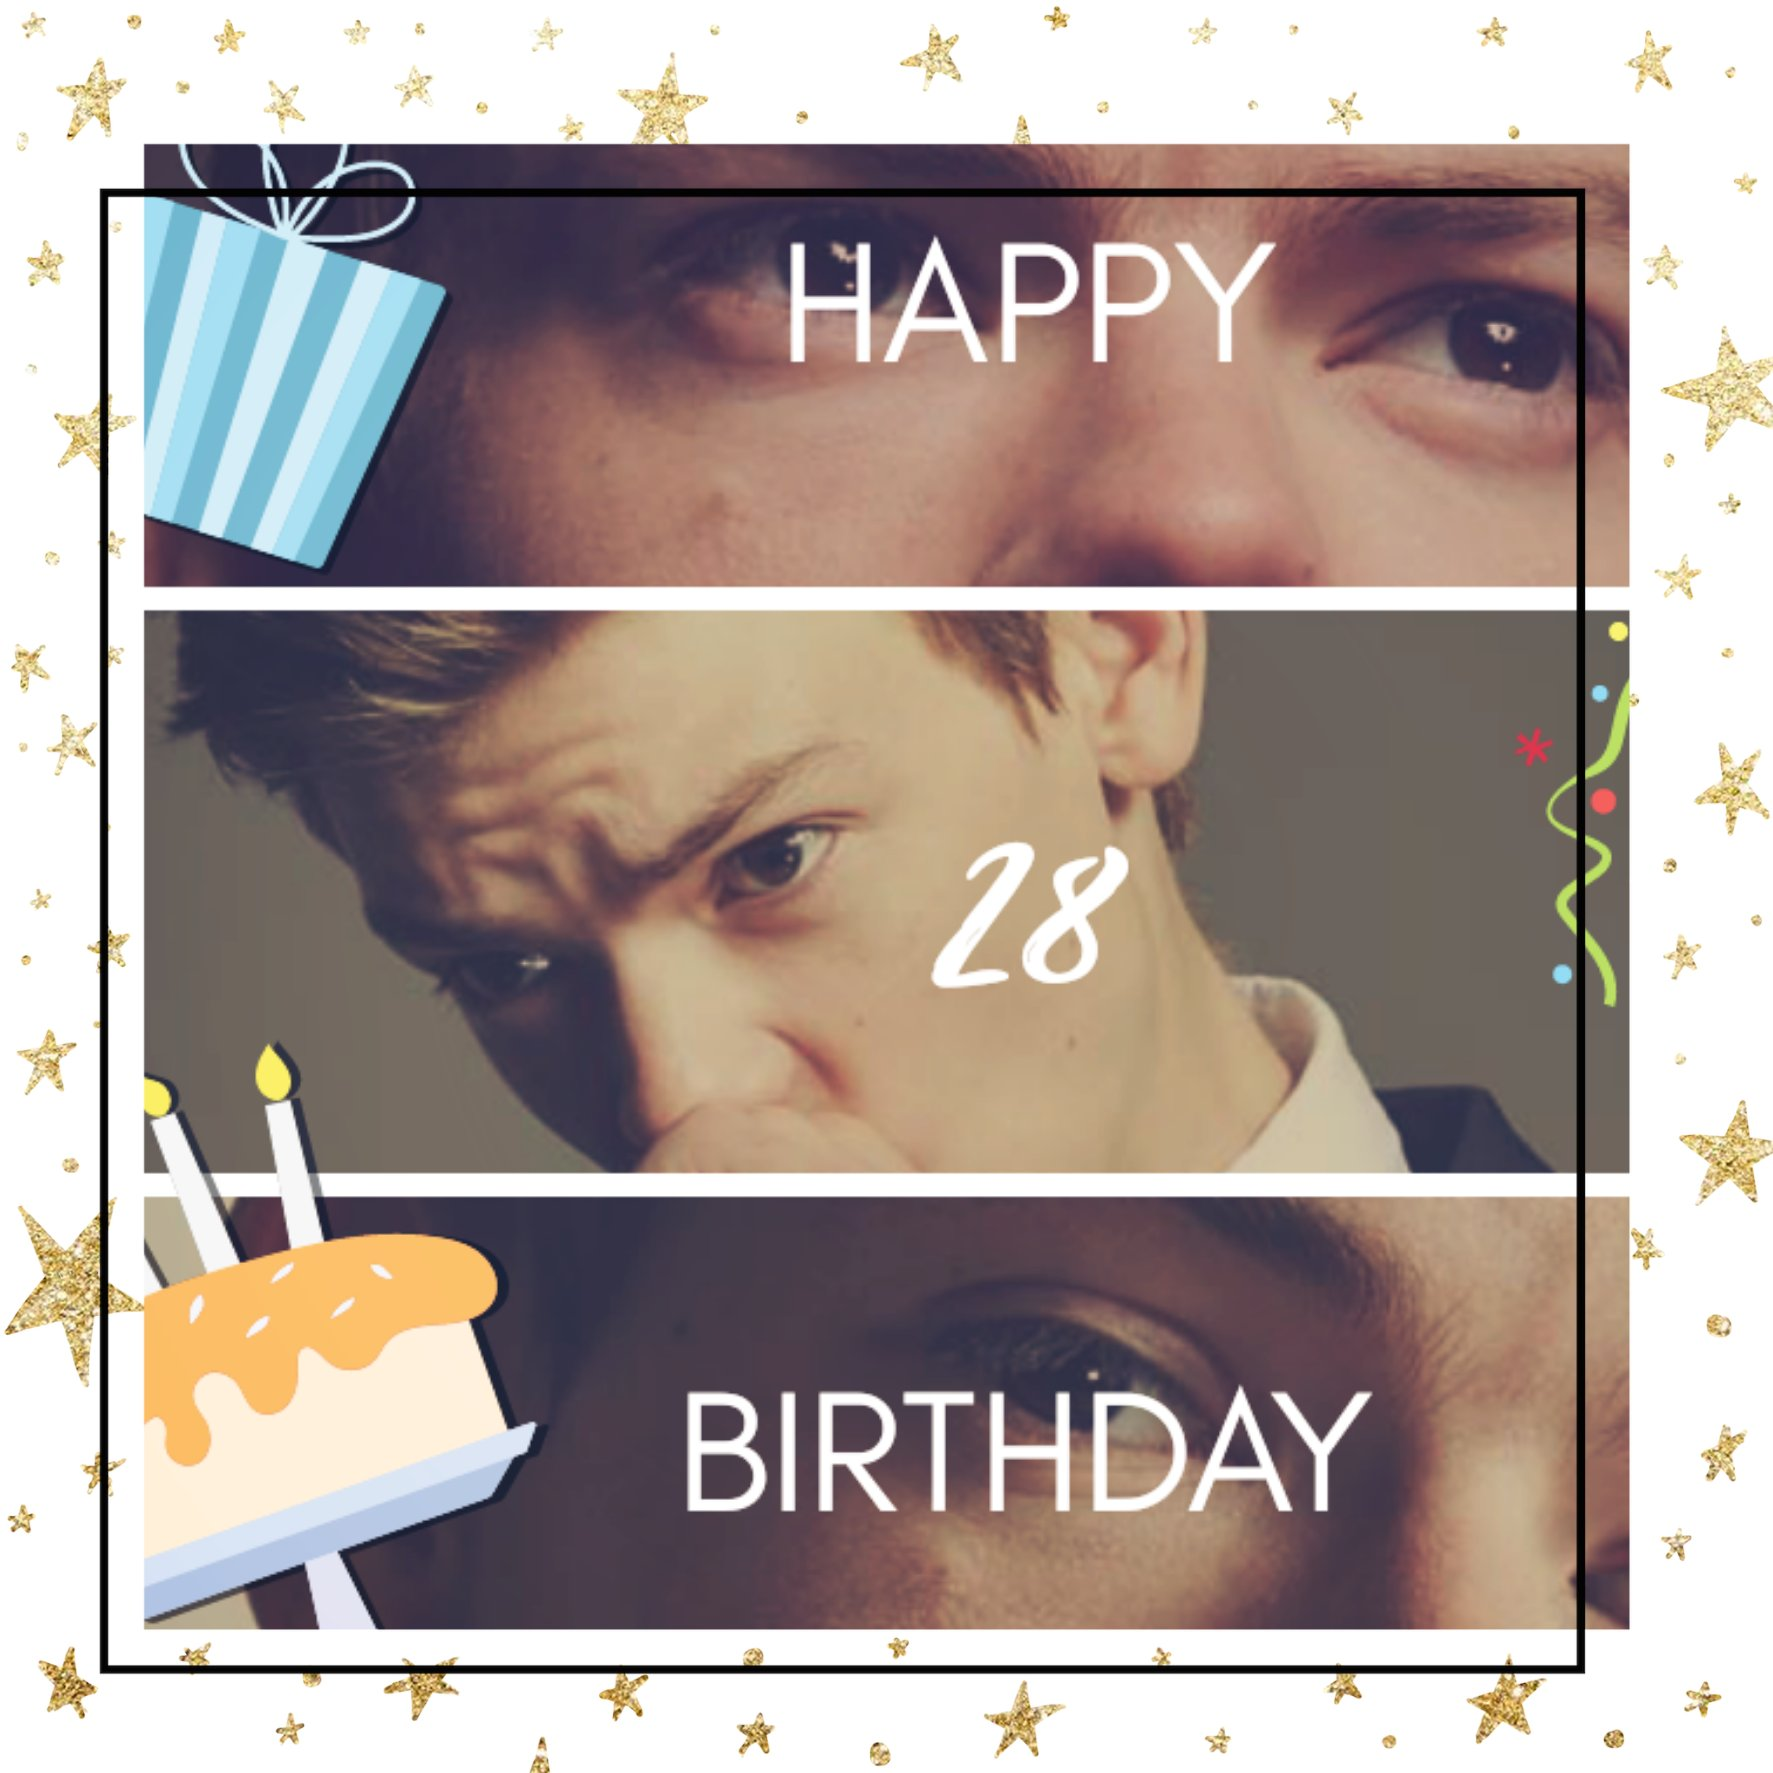 Happy 28 Birthday to the one and only Thomas Brodie-Sangster